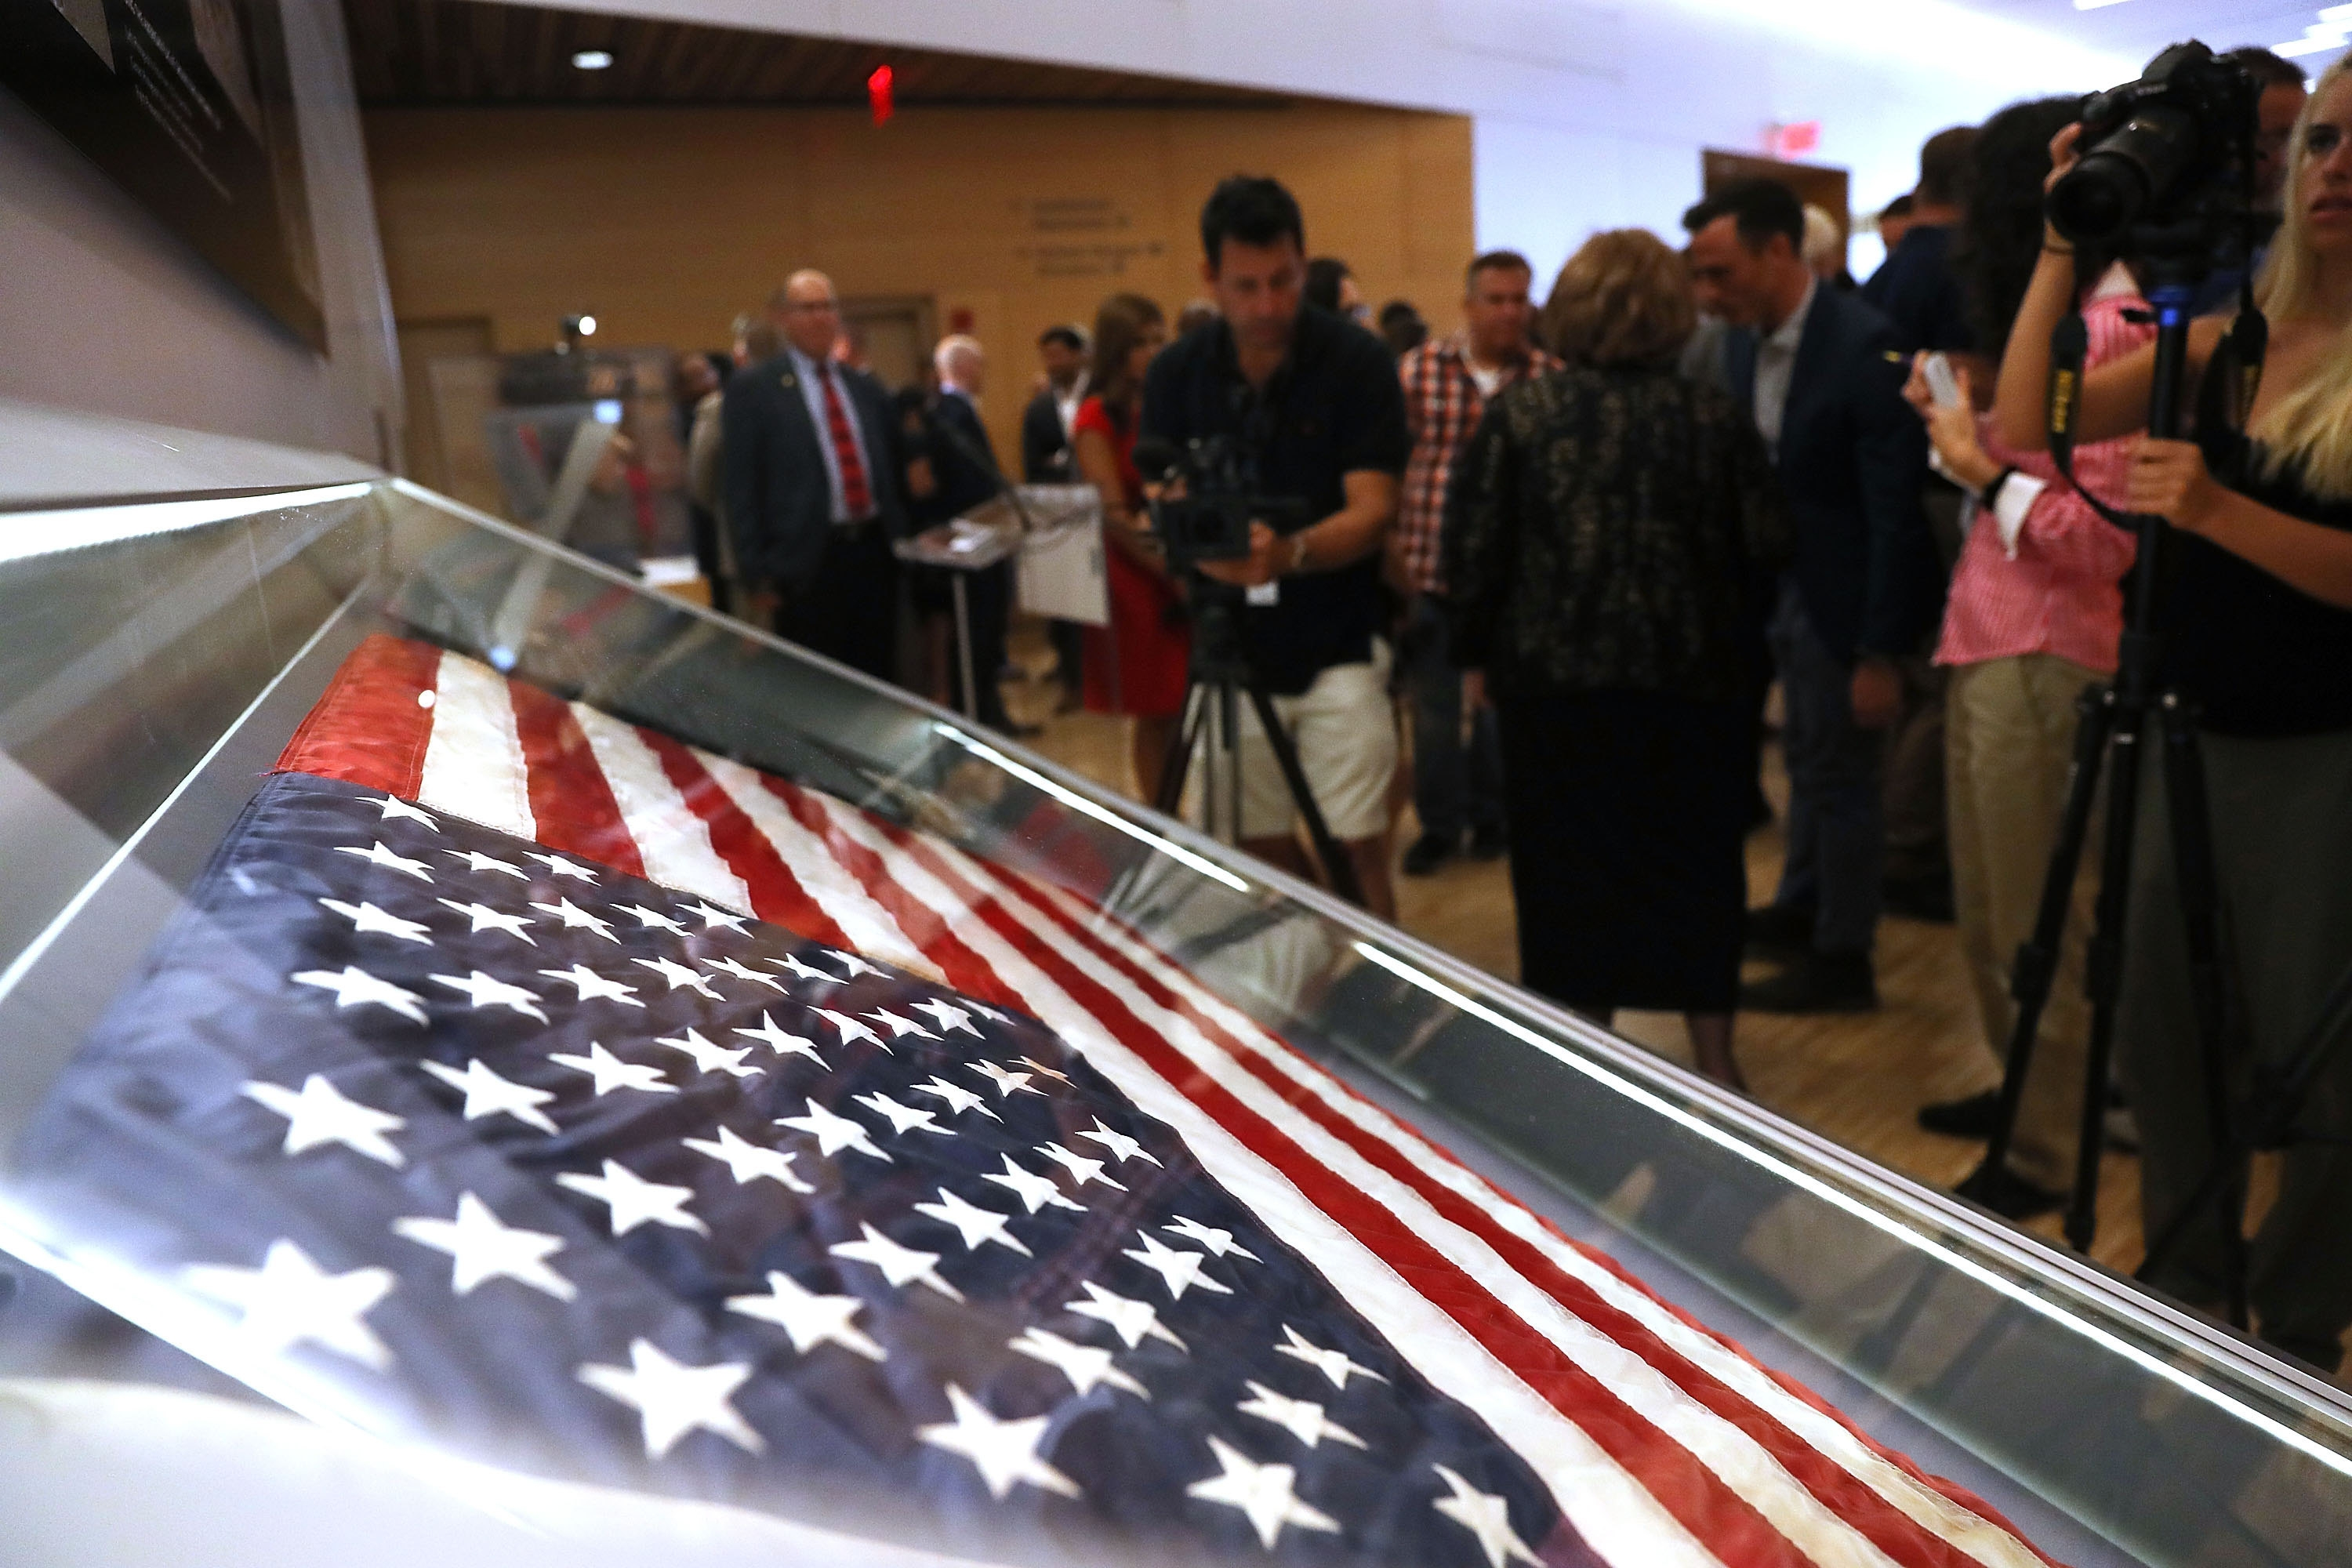 The American flag that was raised by firefighters at the World Trade Center is on display at the National September 11 Memorial & Museum. (Getty Images)